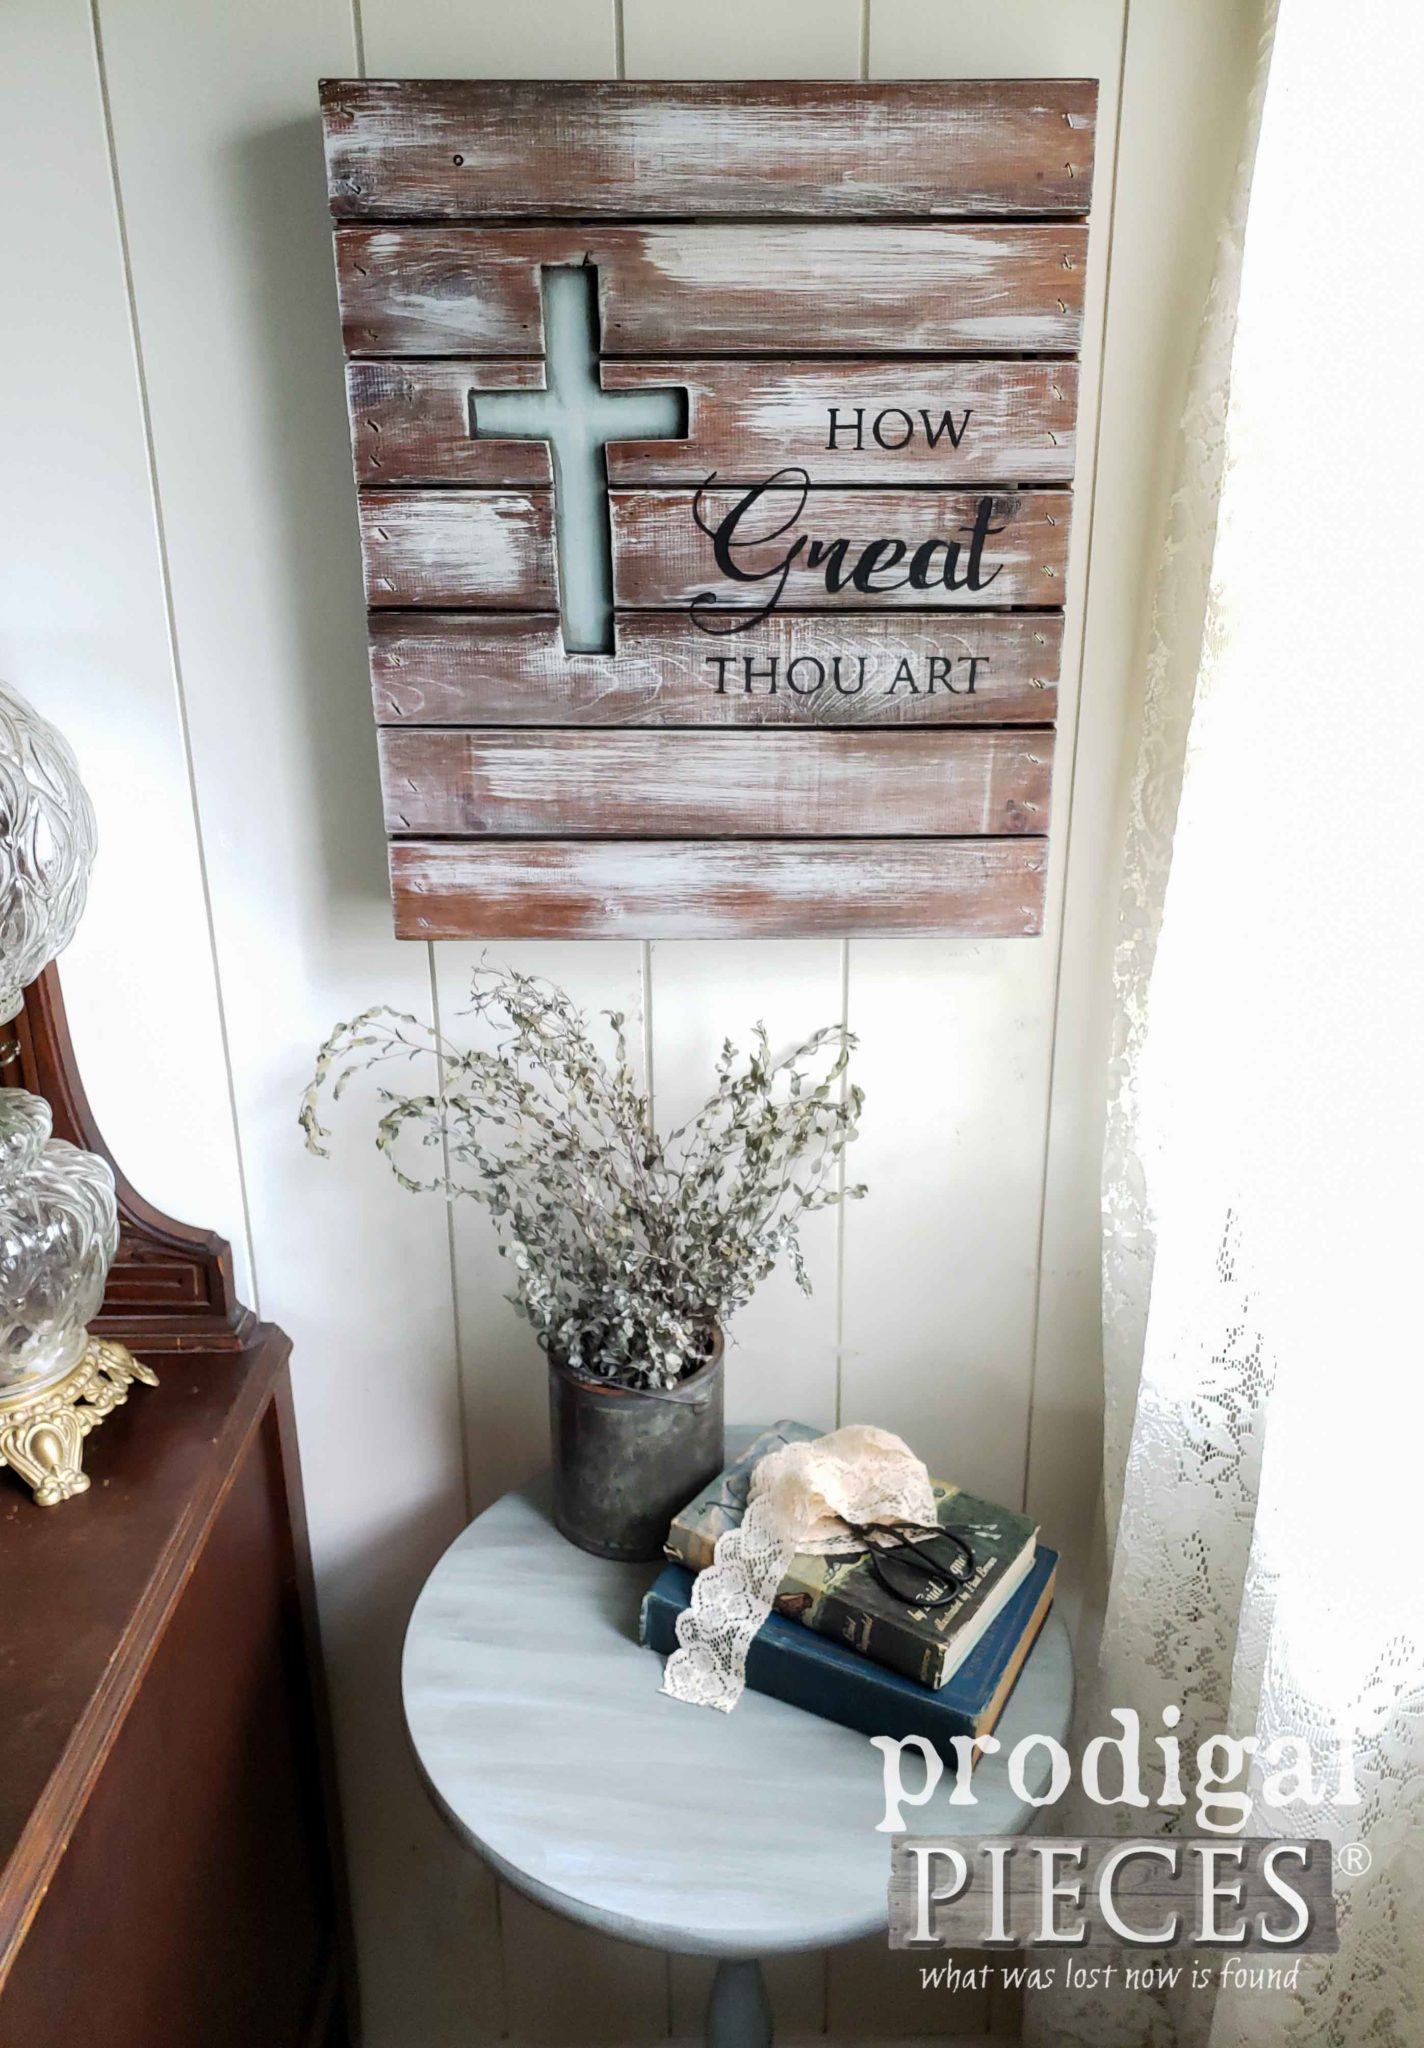 Create Your Own DIY Farmhouse Decor from Thrifted Finds with Inspiration by Larissa of Prodigal Pieces | prodigalpieces.com